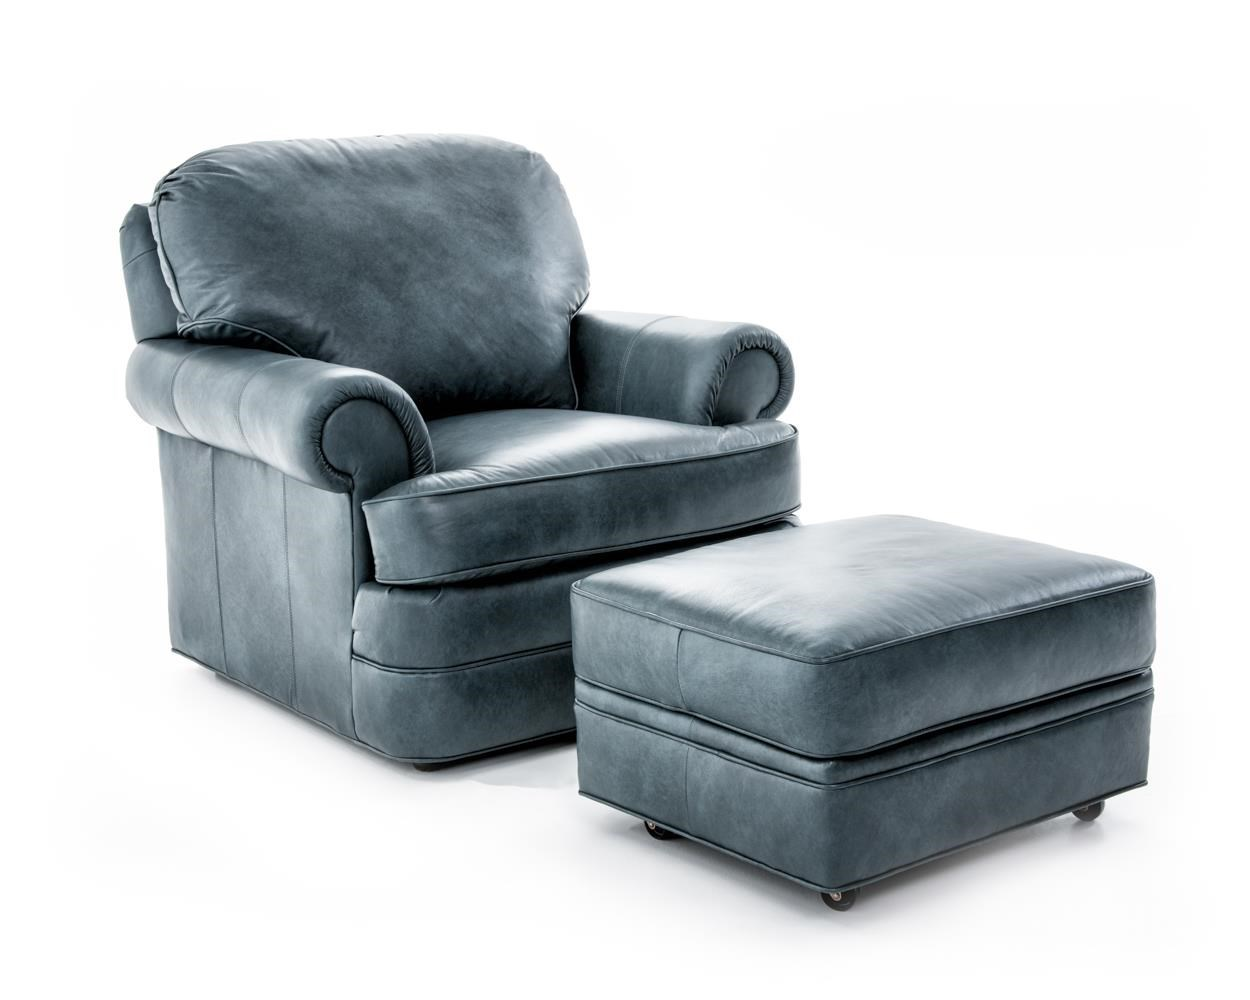 Sherrill Design Your Own Customizable Chair and Ottoman Set - Item Number: 9601-01+9601-00